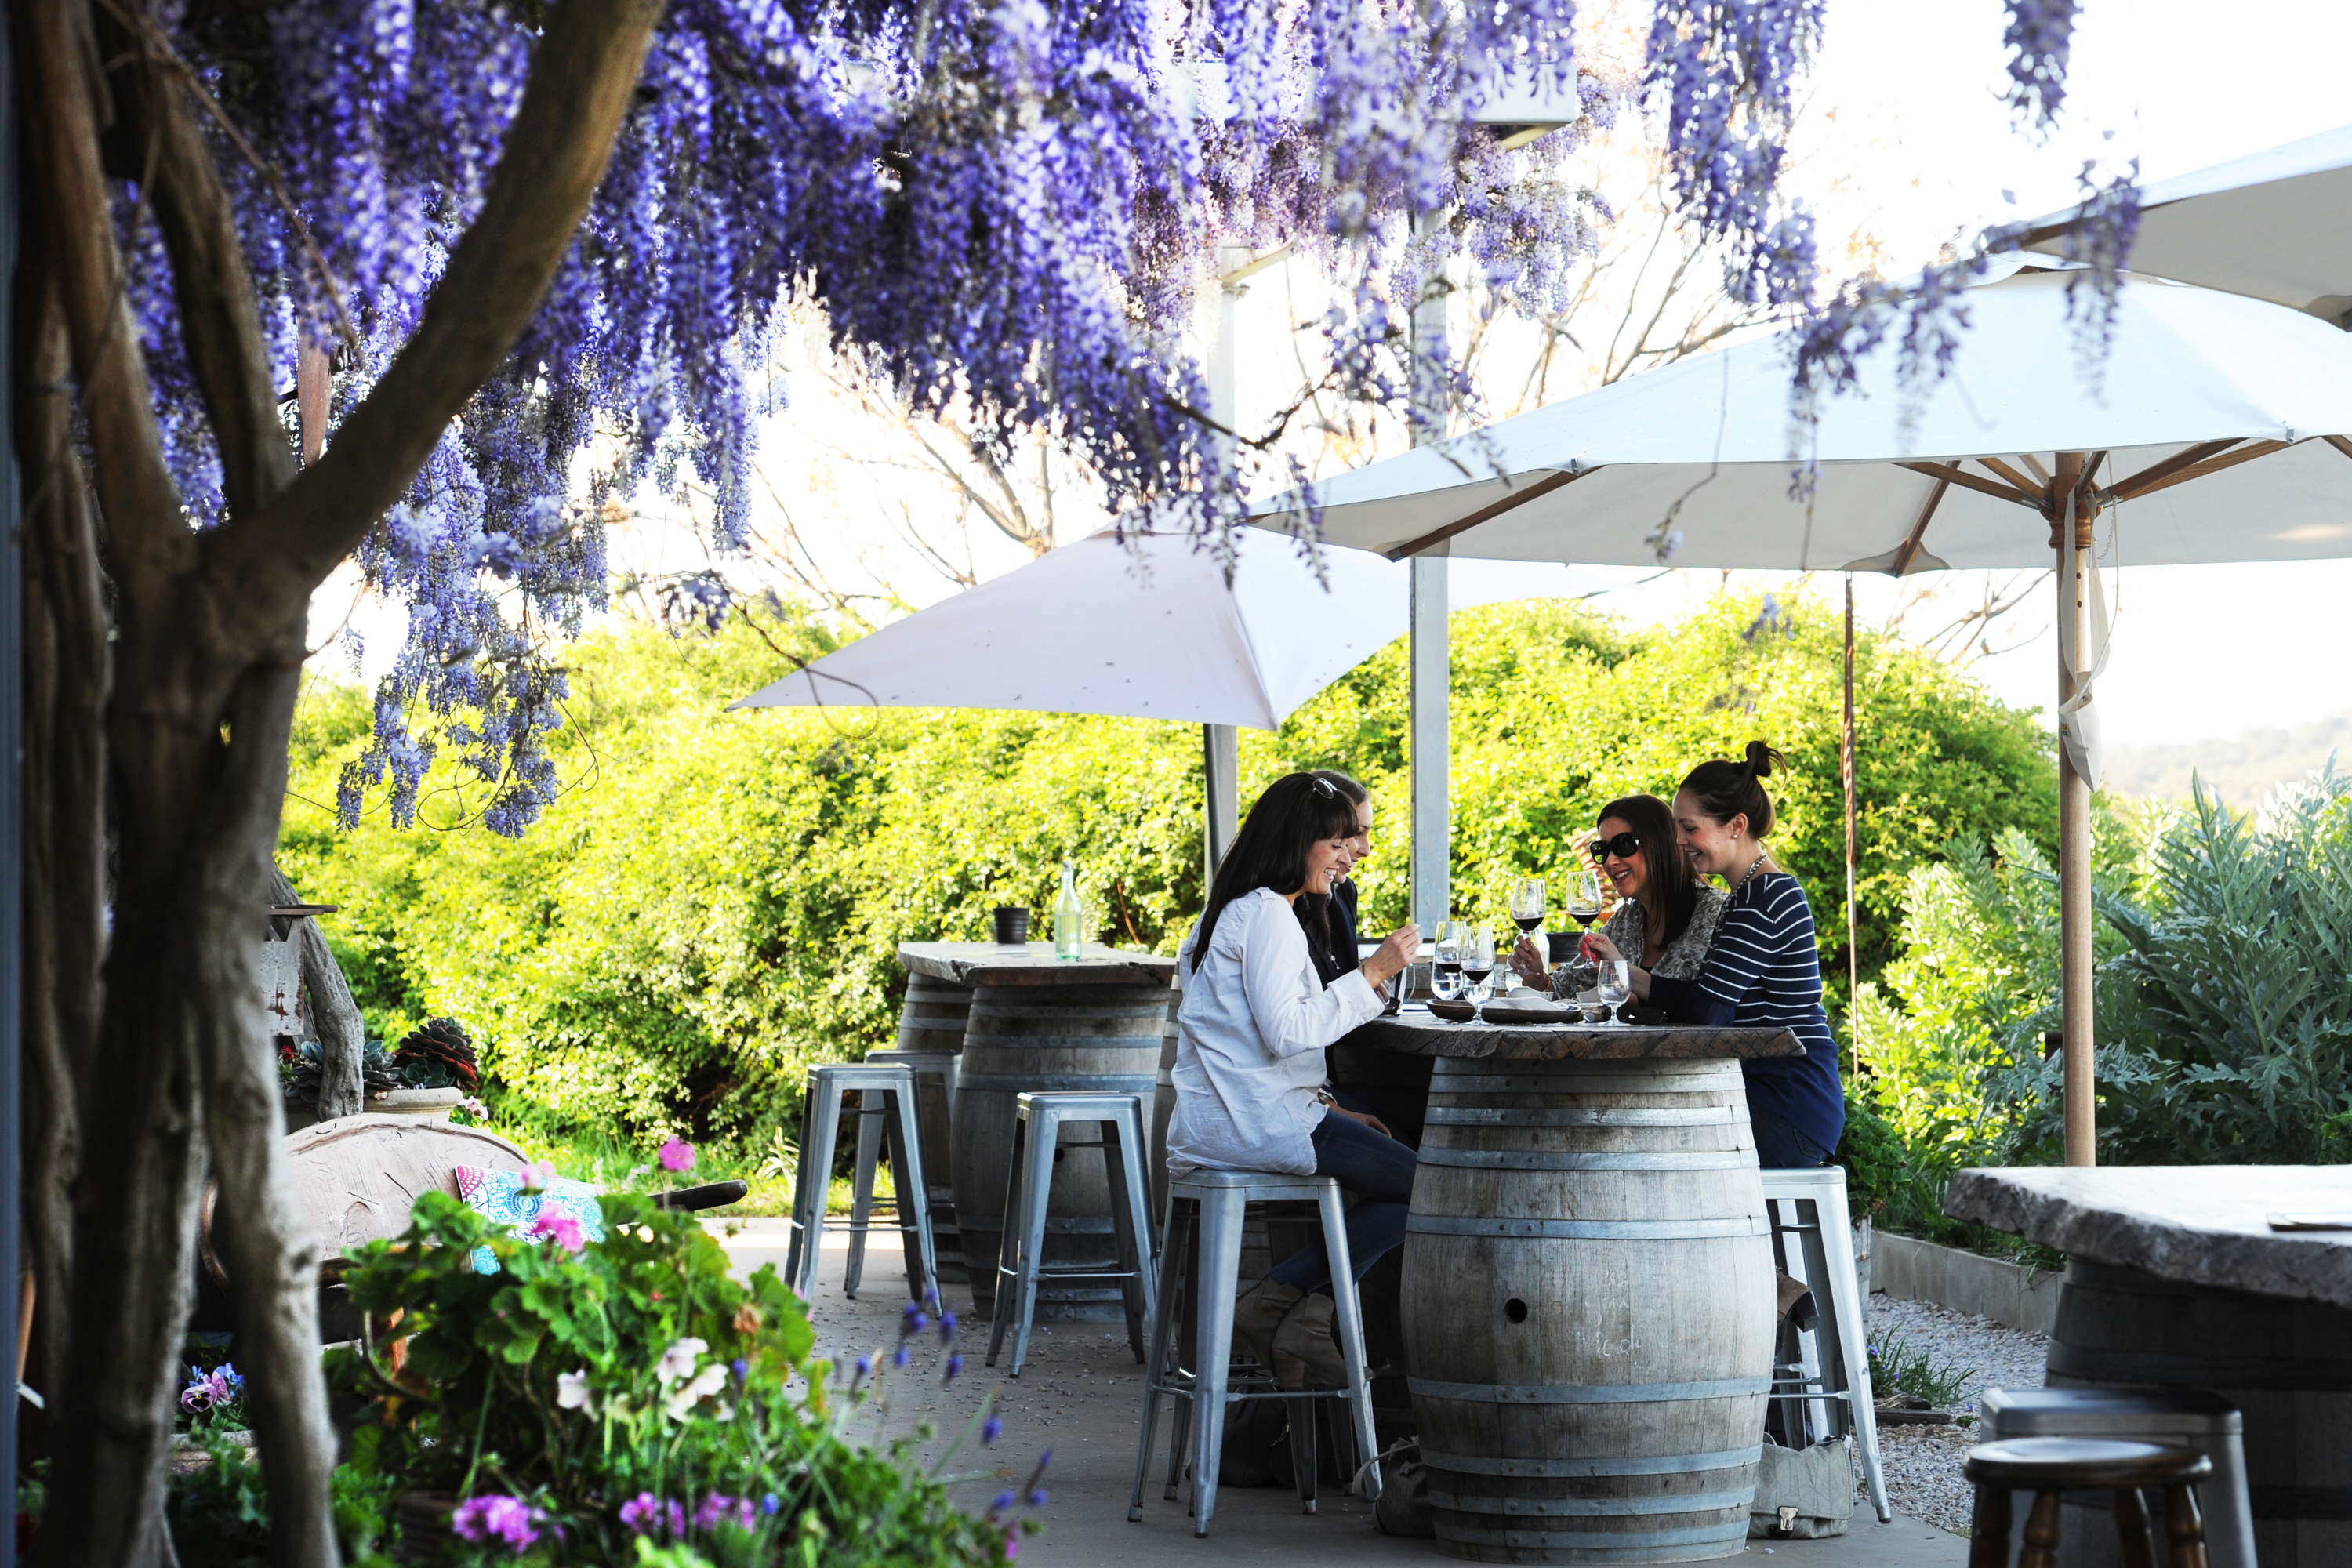 Women drinking wine under a wisteria tree at Lowe Wines cellar door